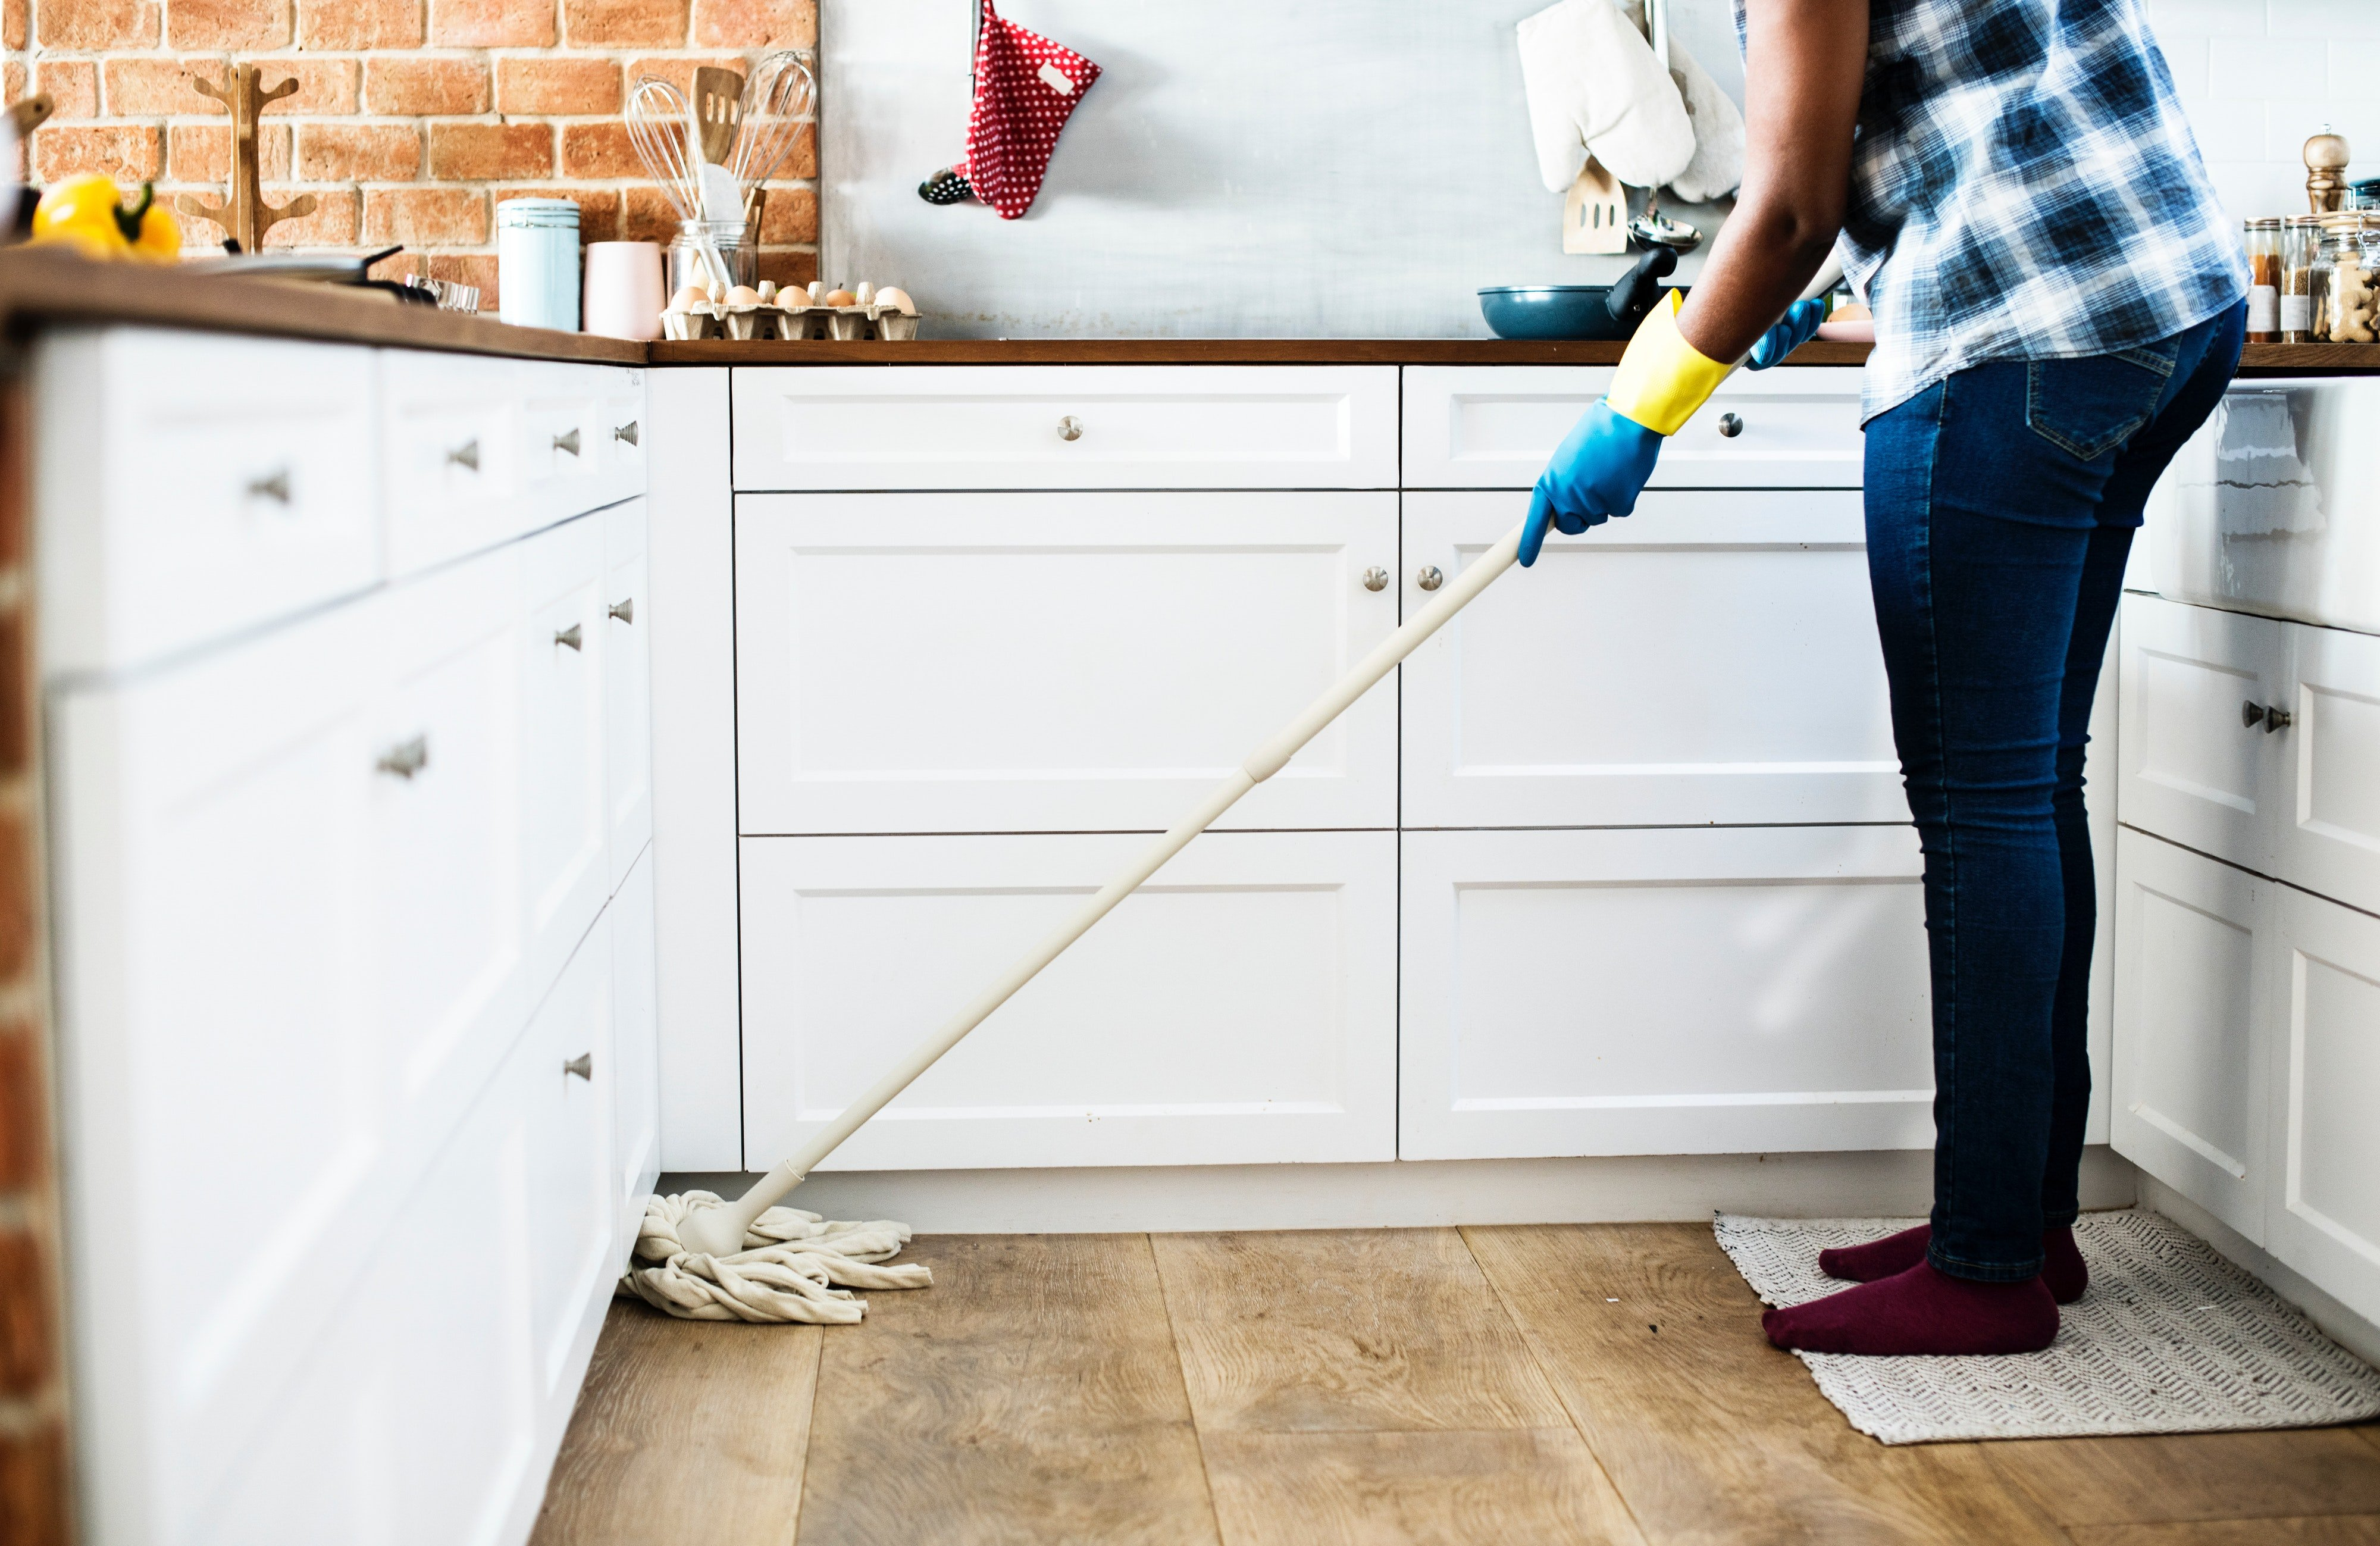 Image of a renter cleaning their home